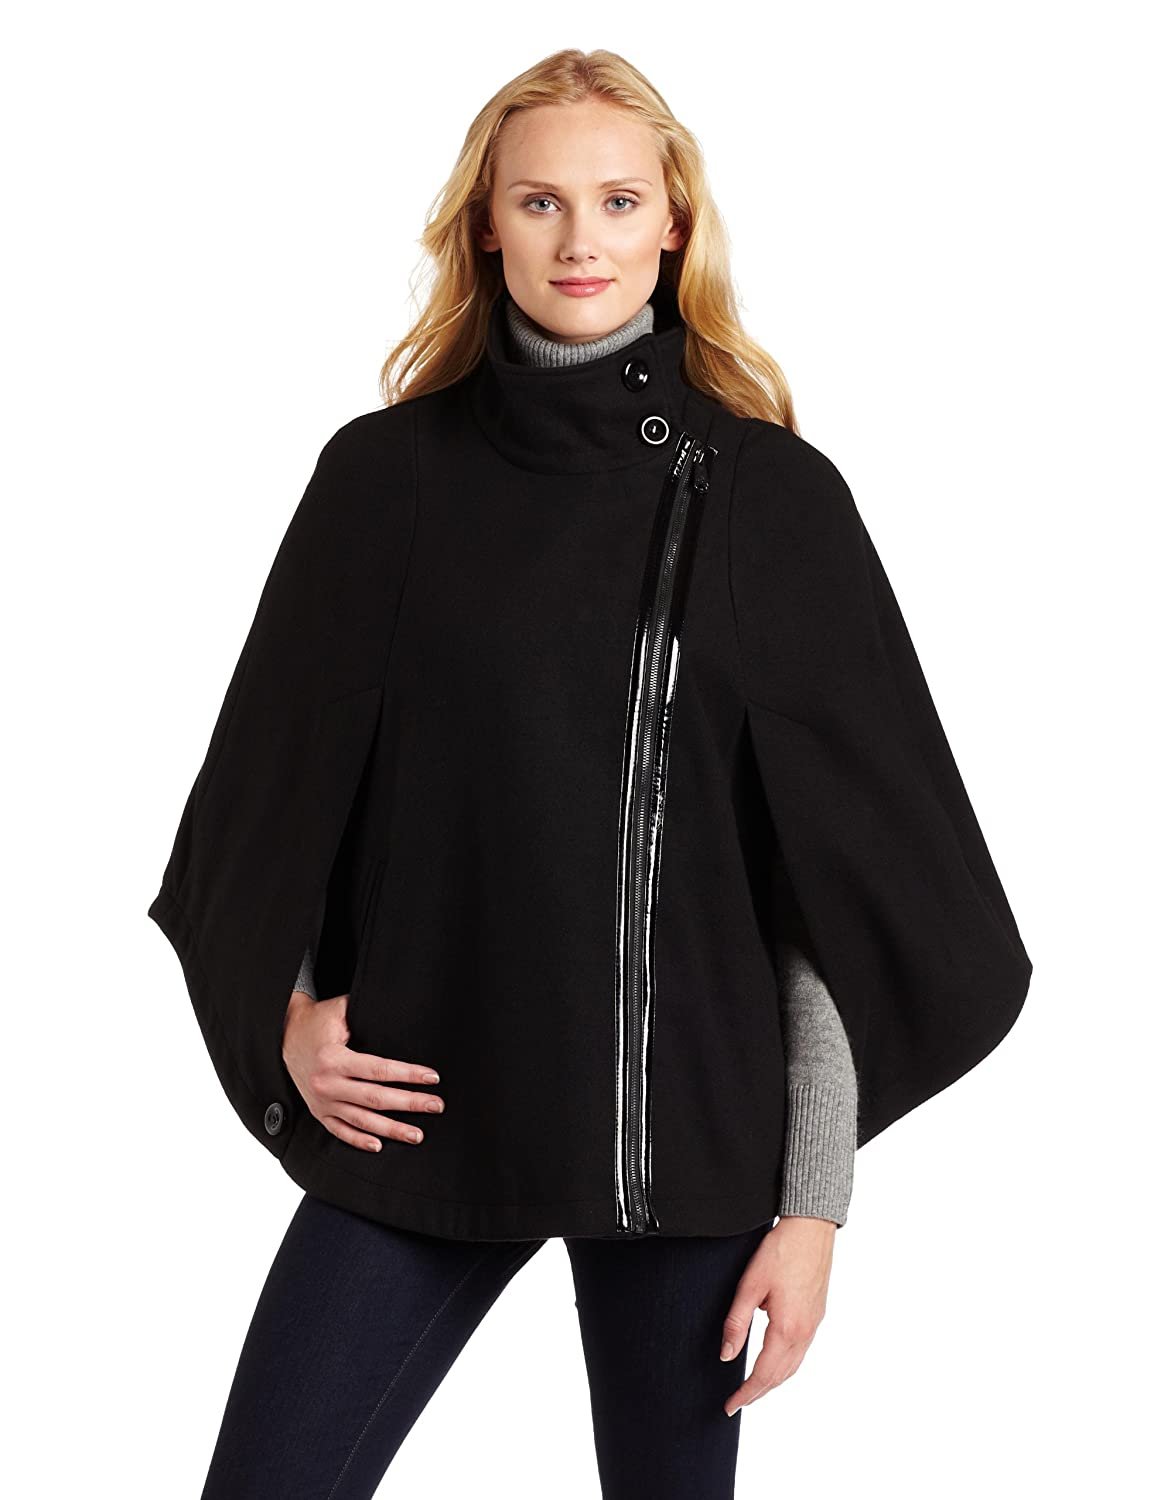 Cape outerwear: Via Spiga Women's Zip Close Cape